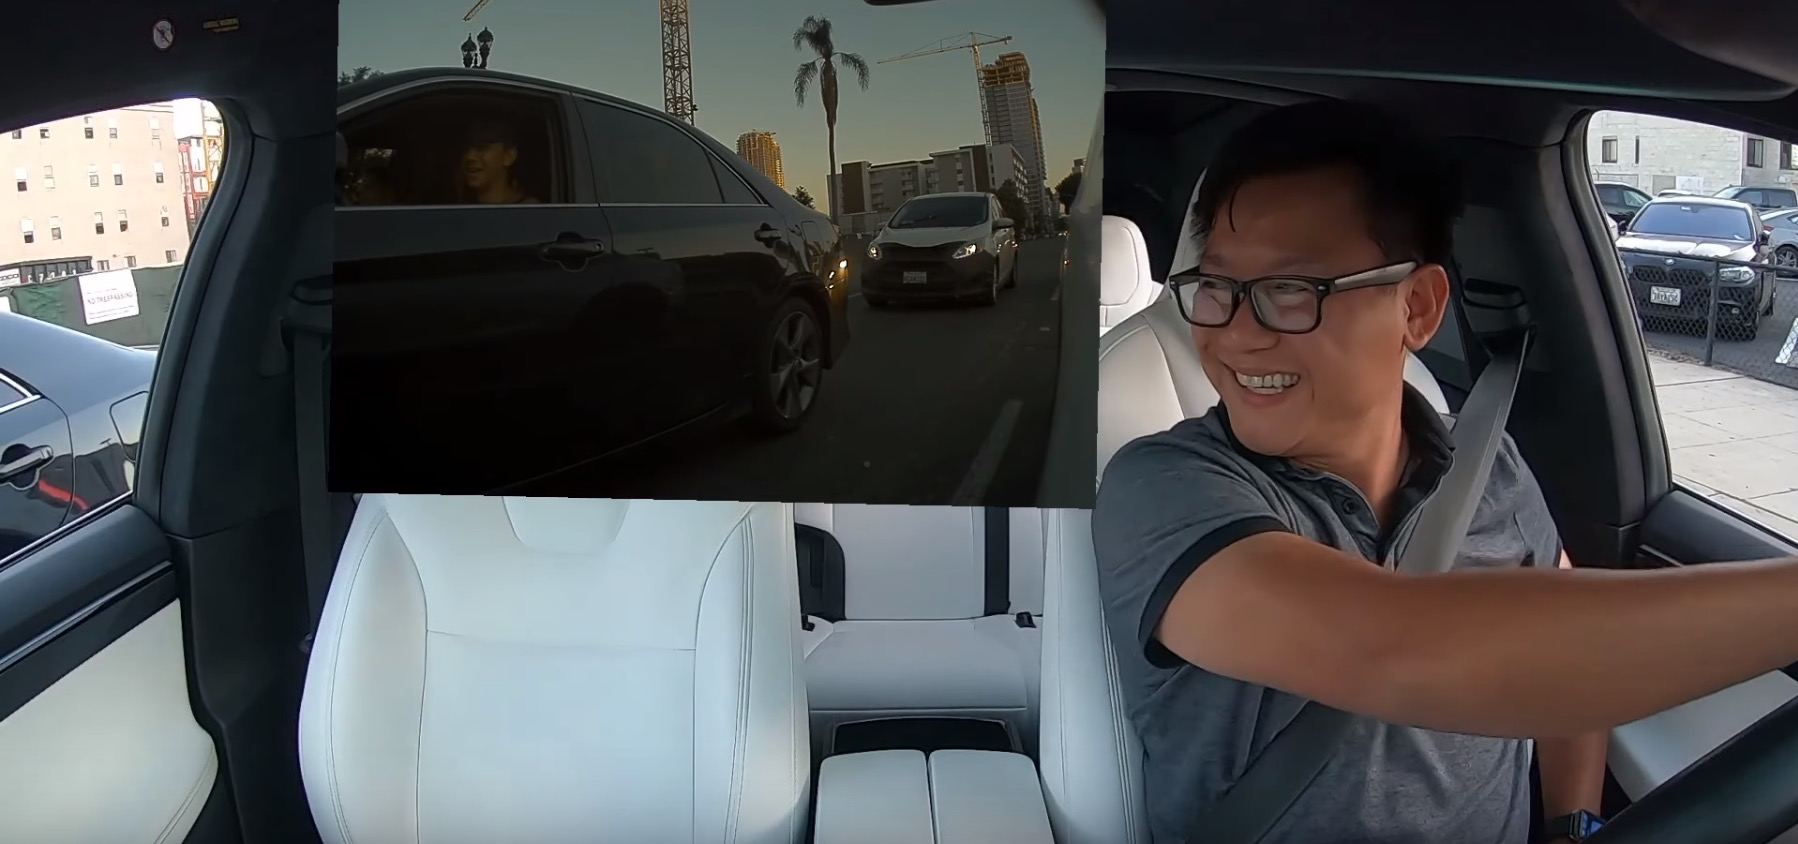 Tesla owner has a friendly street race that turns into perfect candid ad - Electrek